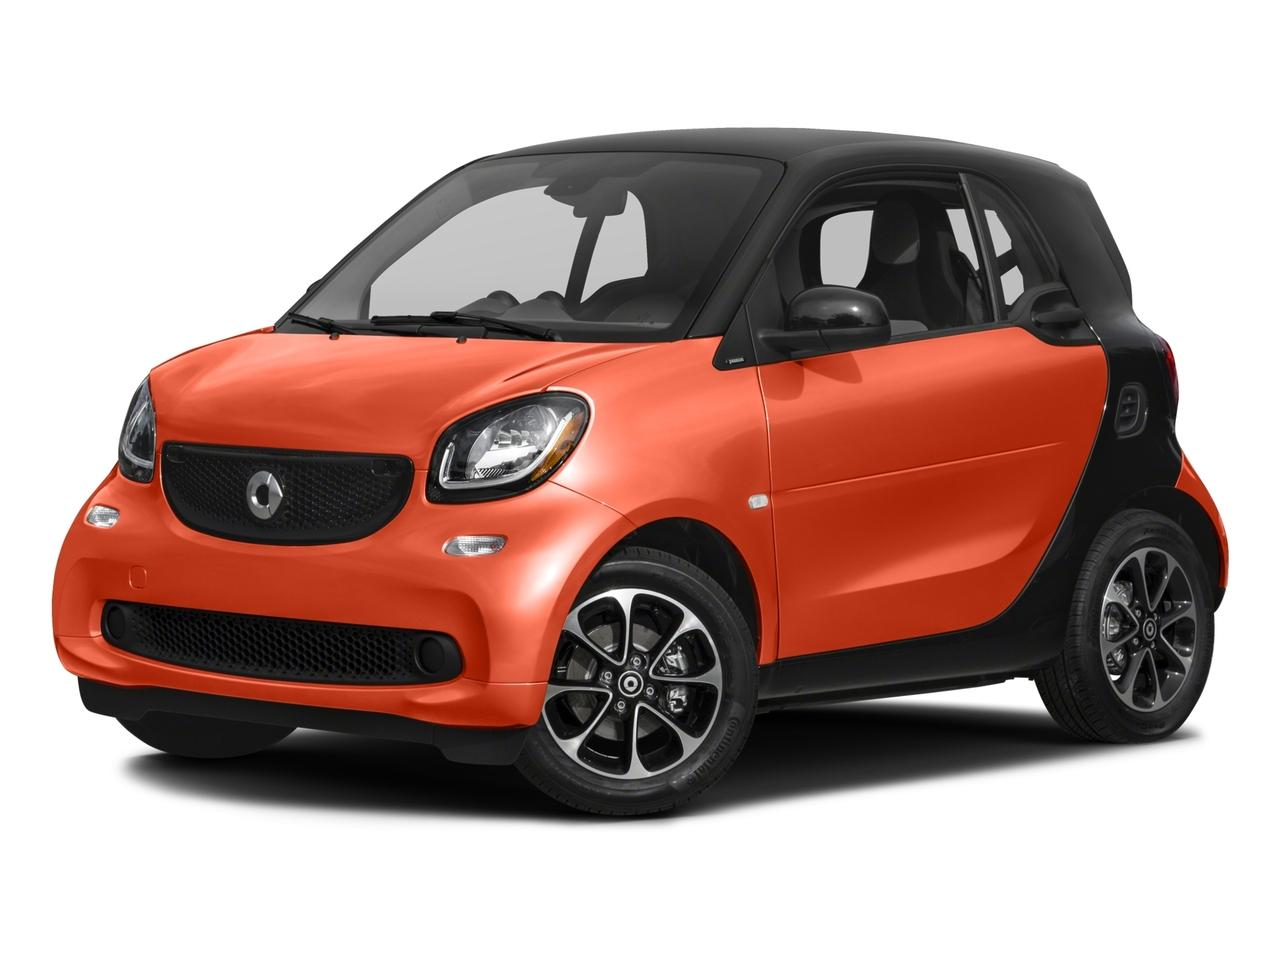 2016 smart fortwo Vehicle Photo in Akron, OH 44303